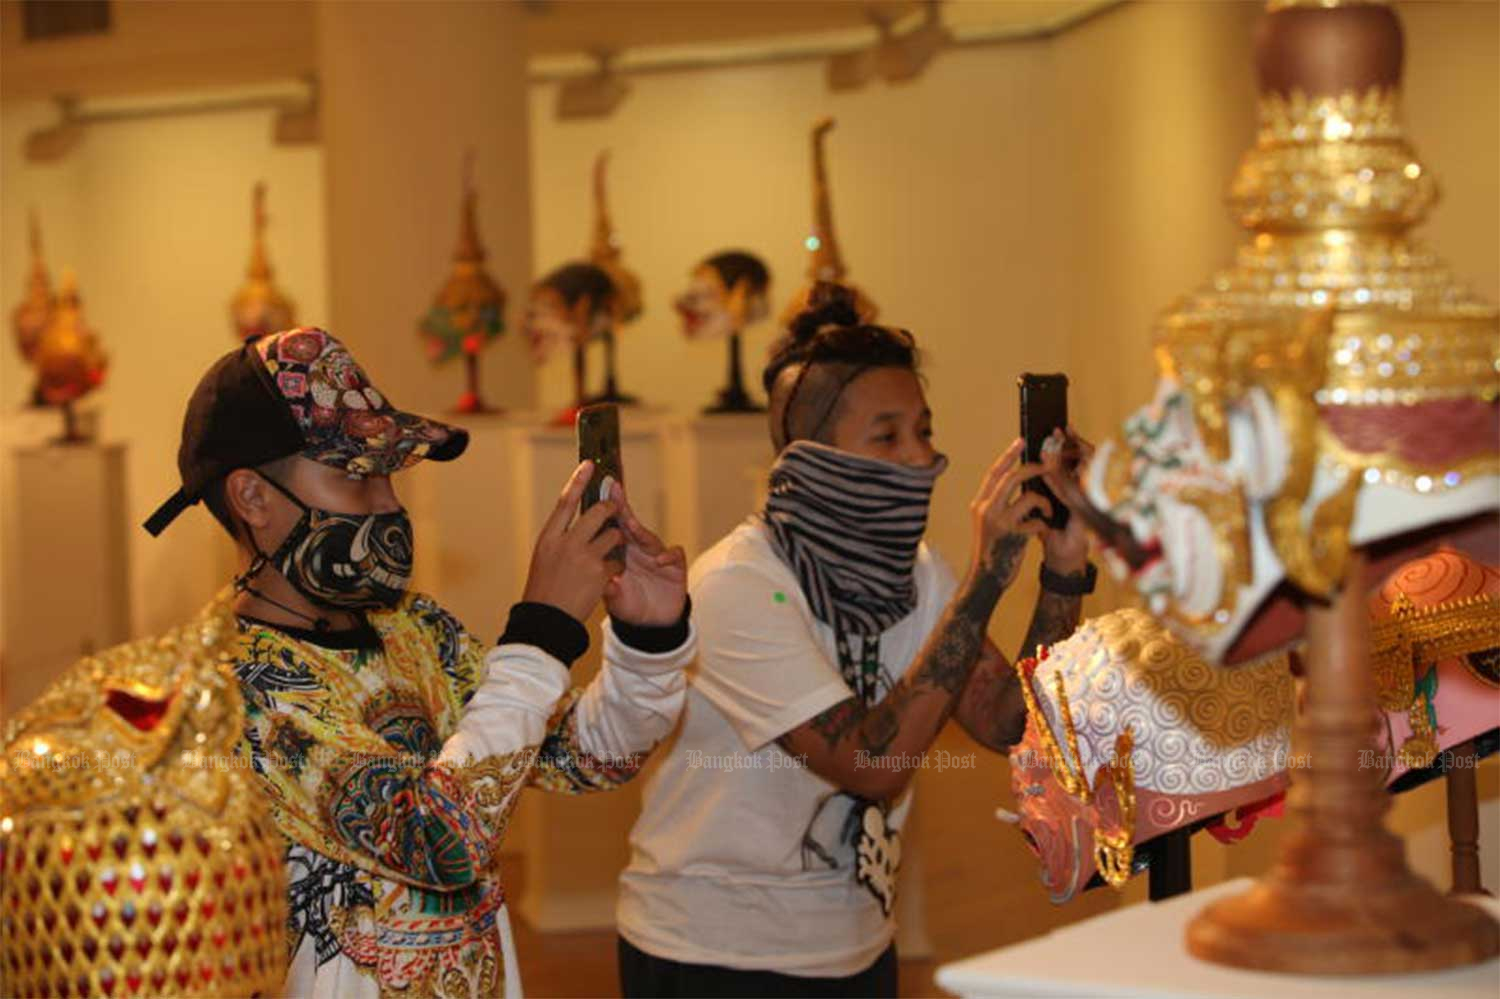 Visitors take photos of classical khon masks at an exhibition at the Queen's Gallery on Ratchadamnoen Klang Road in Bangkok's Phra Nakhon district on Nov 23. The  exhibition continues until Dec 22. (Photo: Apichart Jinakul)